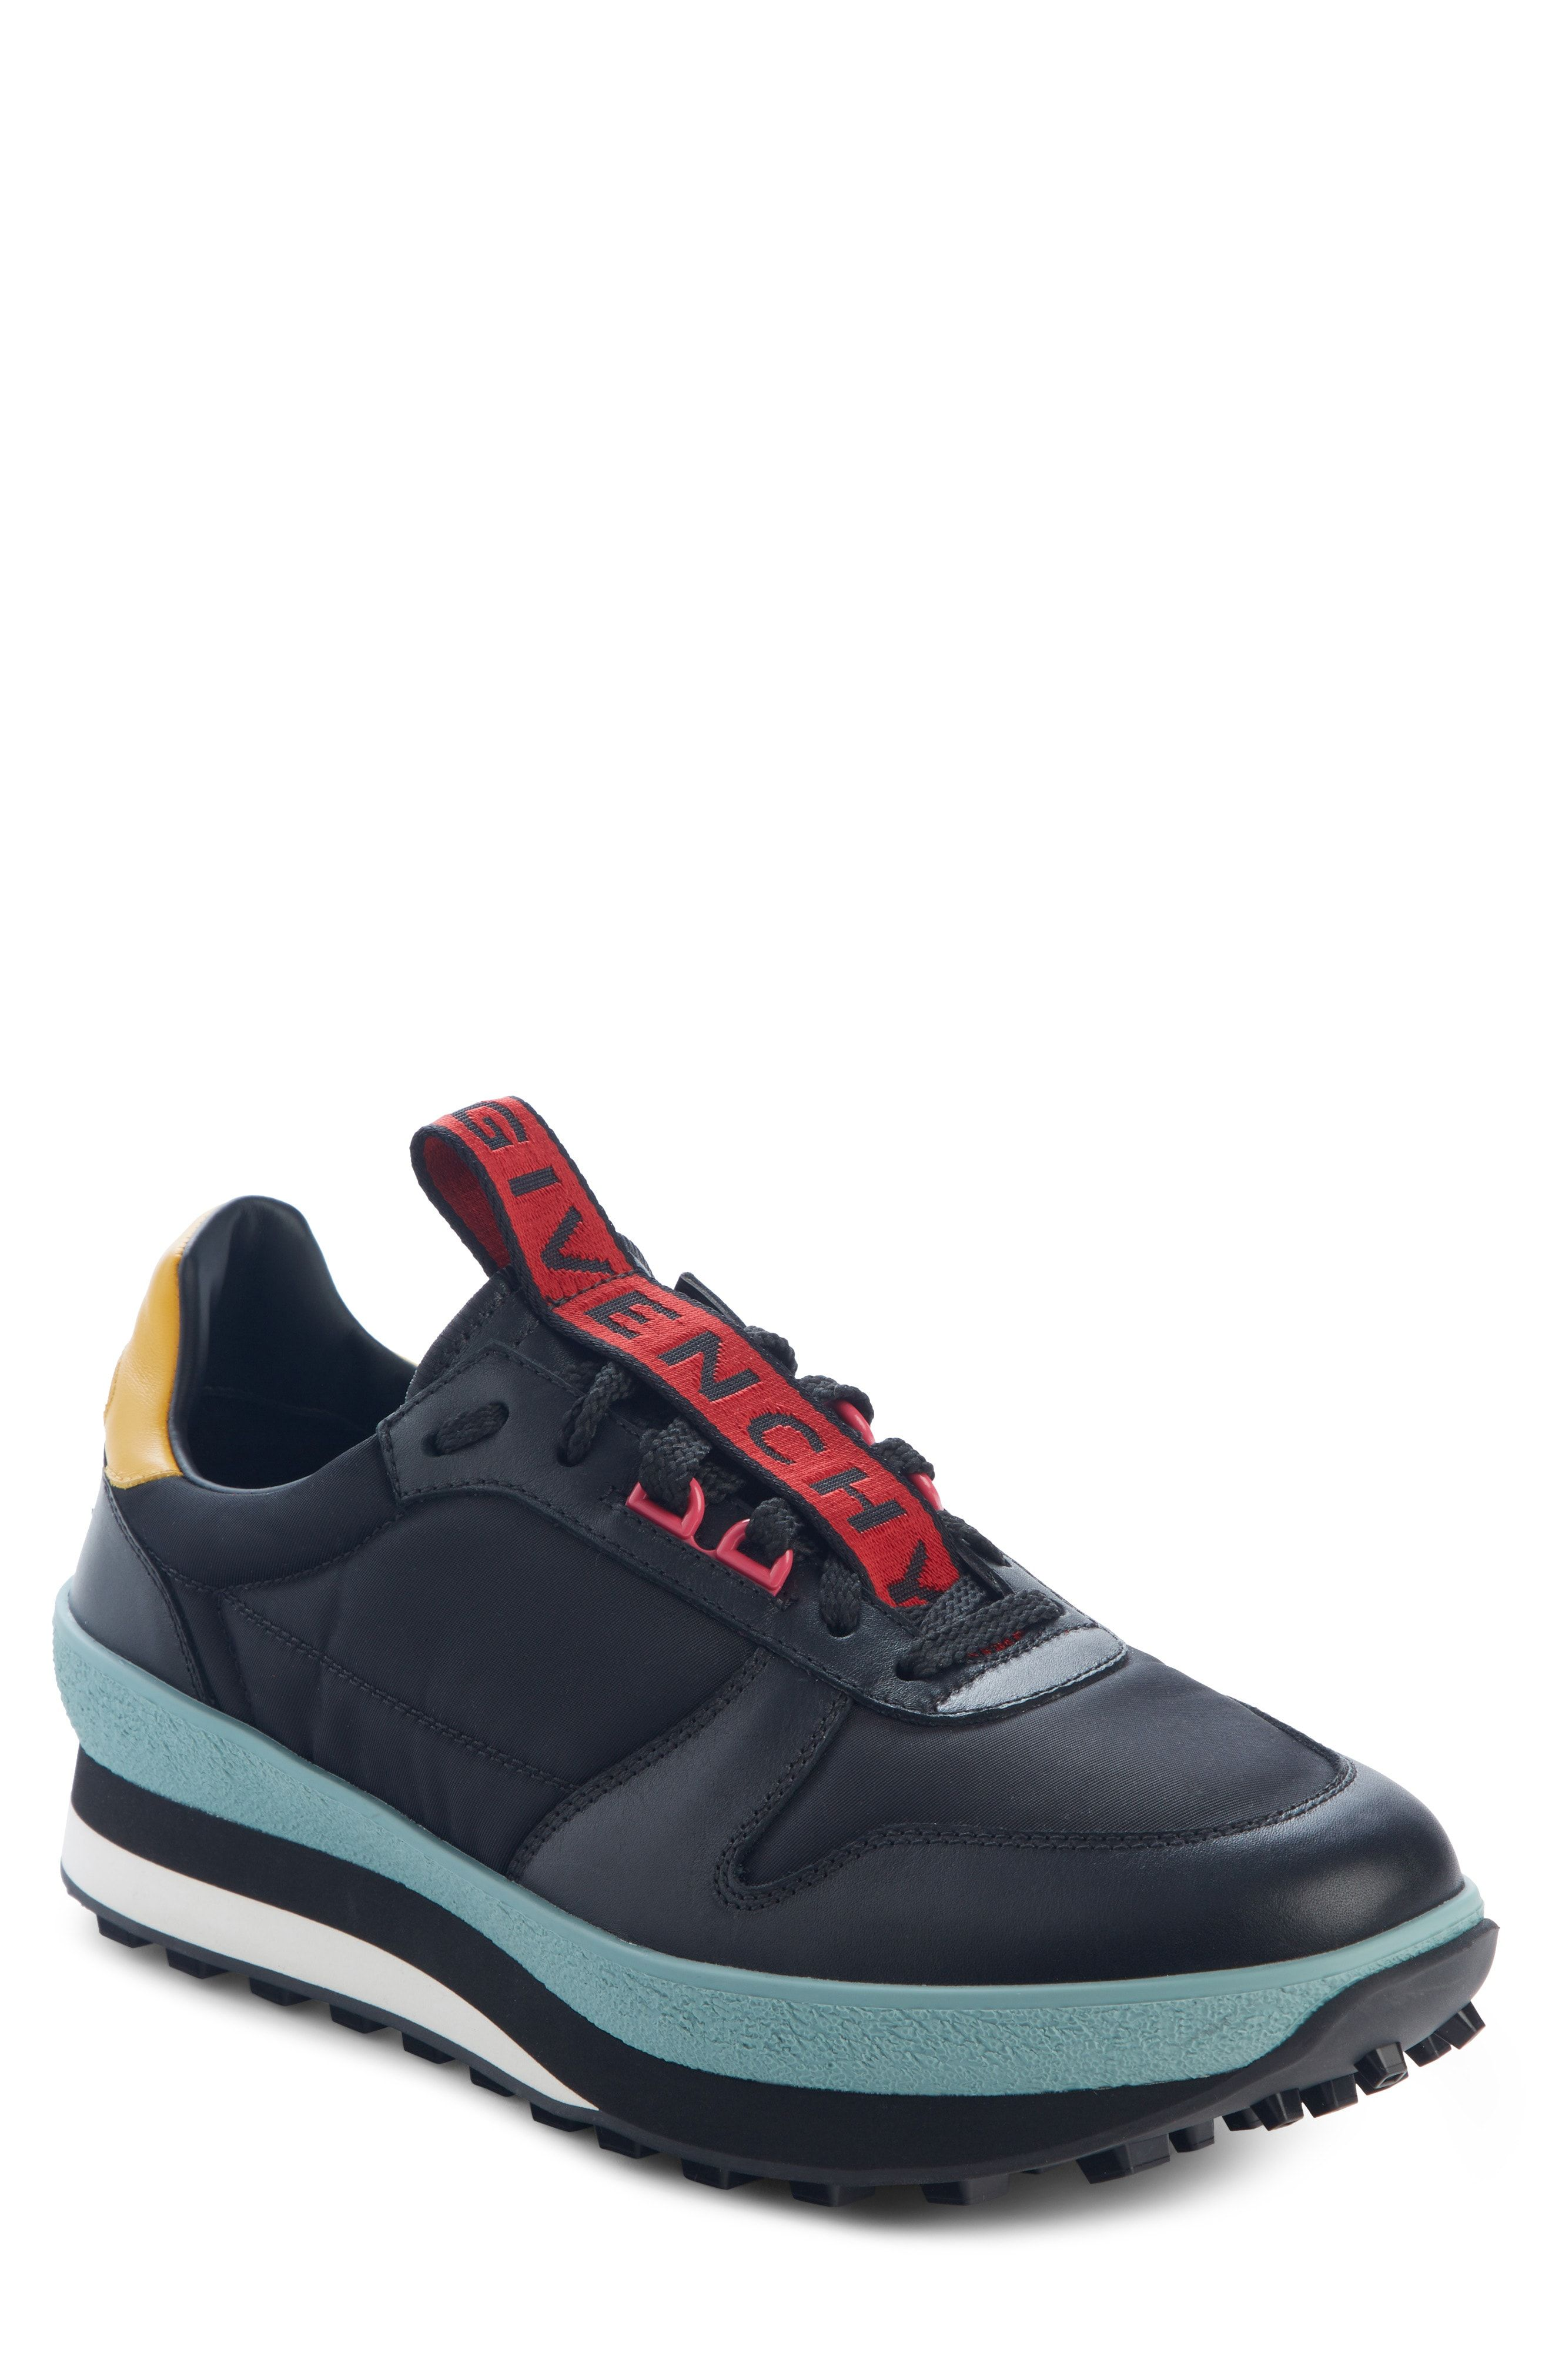 02077eb3a5c918 GIVENCHY TR3 LOW RUNNER SNEAKER. #givenchy #shoes | Givenchy in 2019 ...